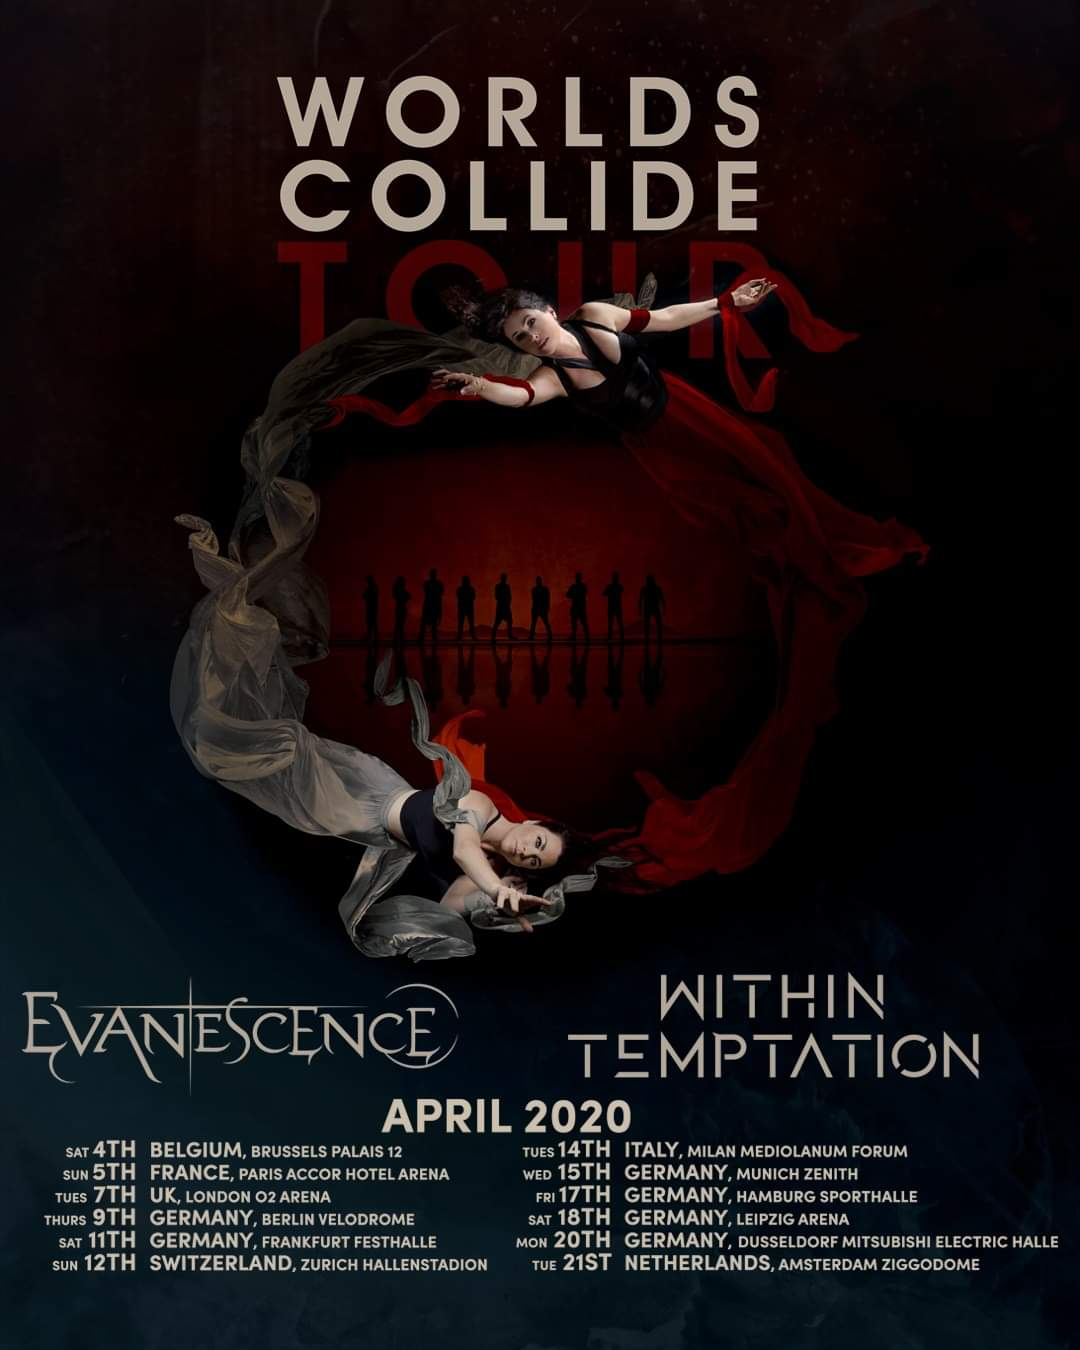 Poster Evanescence & Within Temptation - Worlds Collide Tour 2019